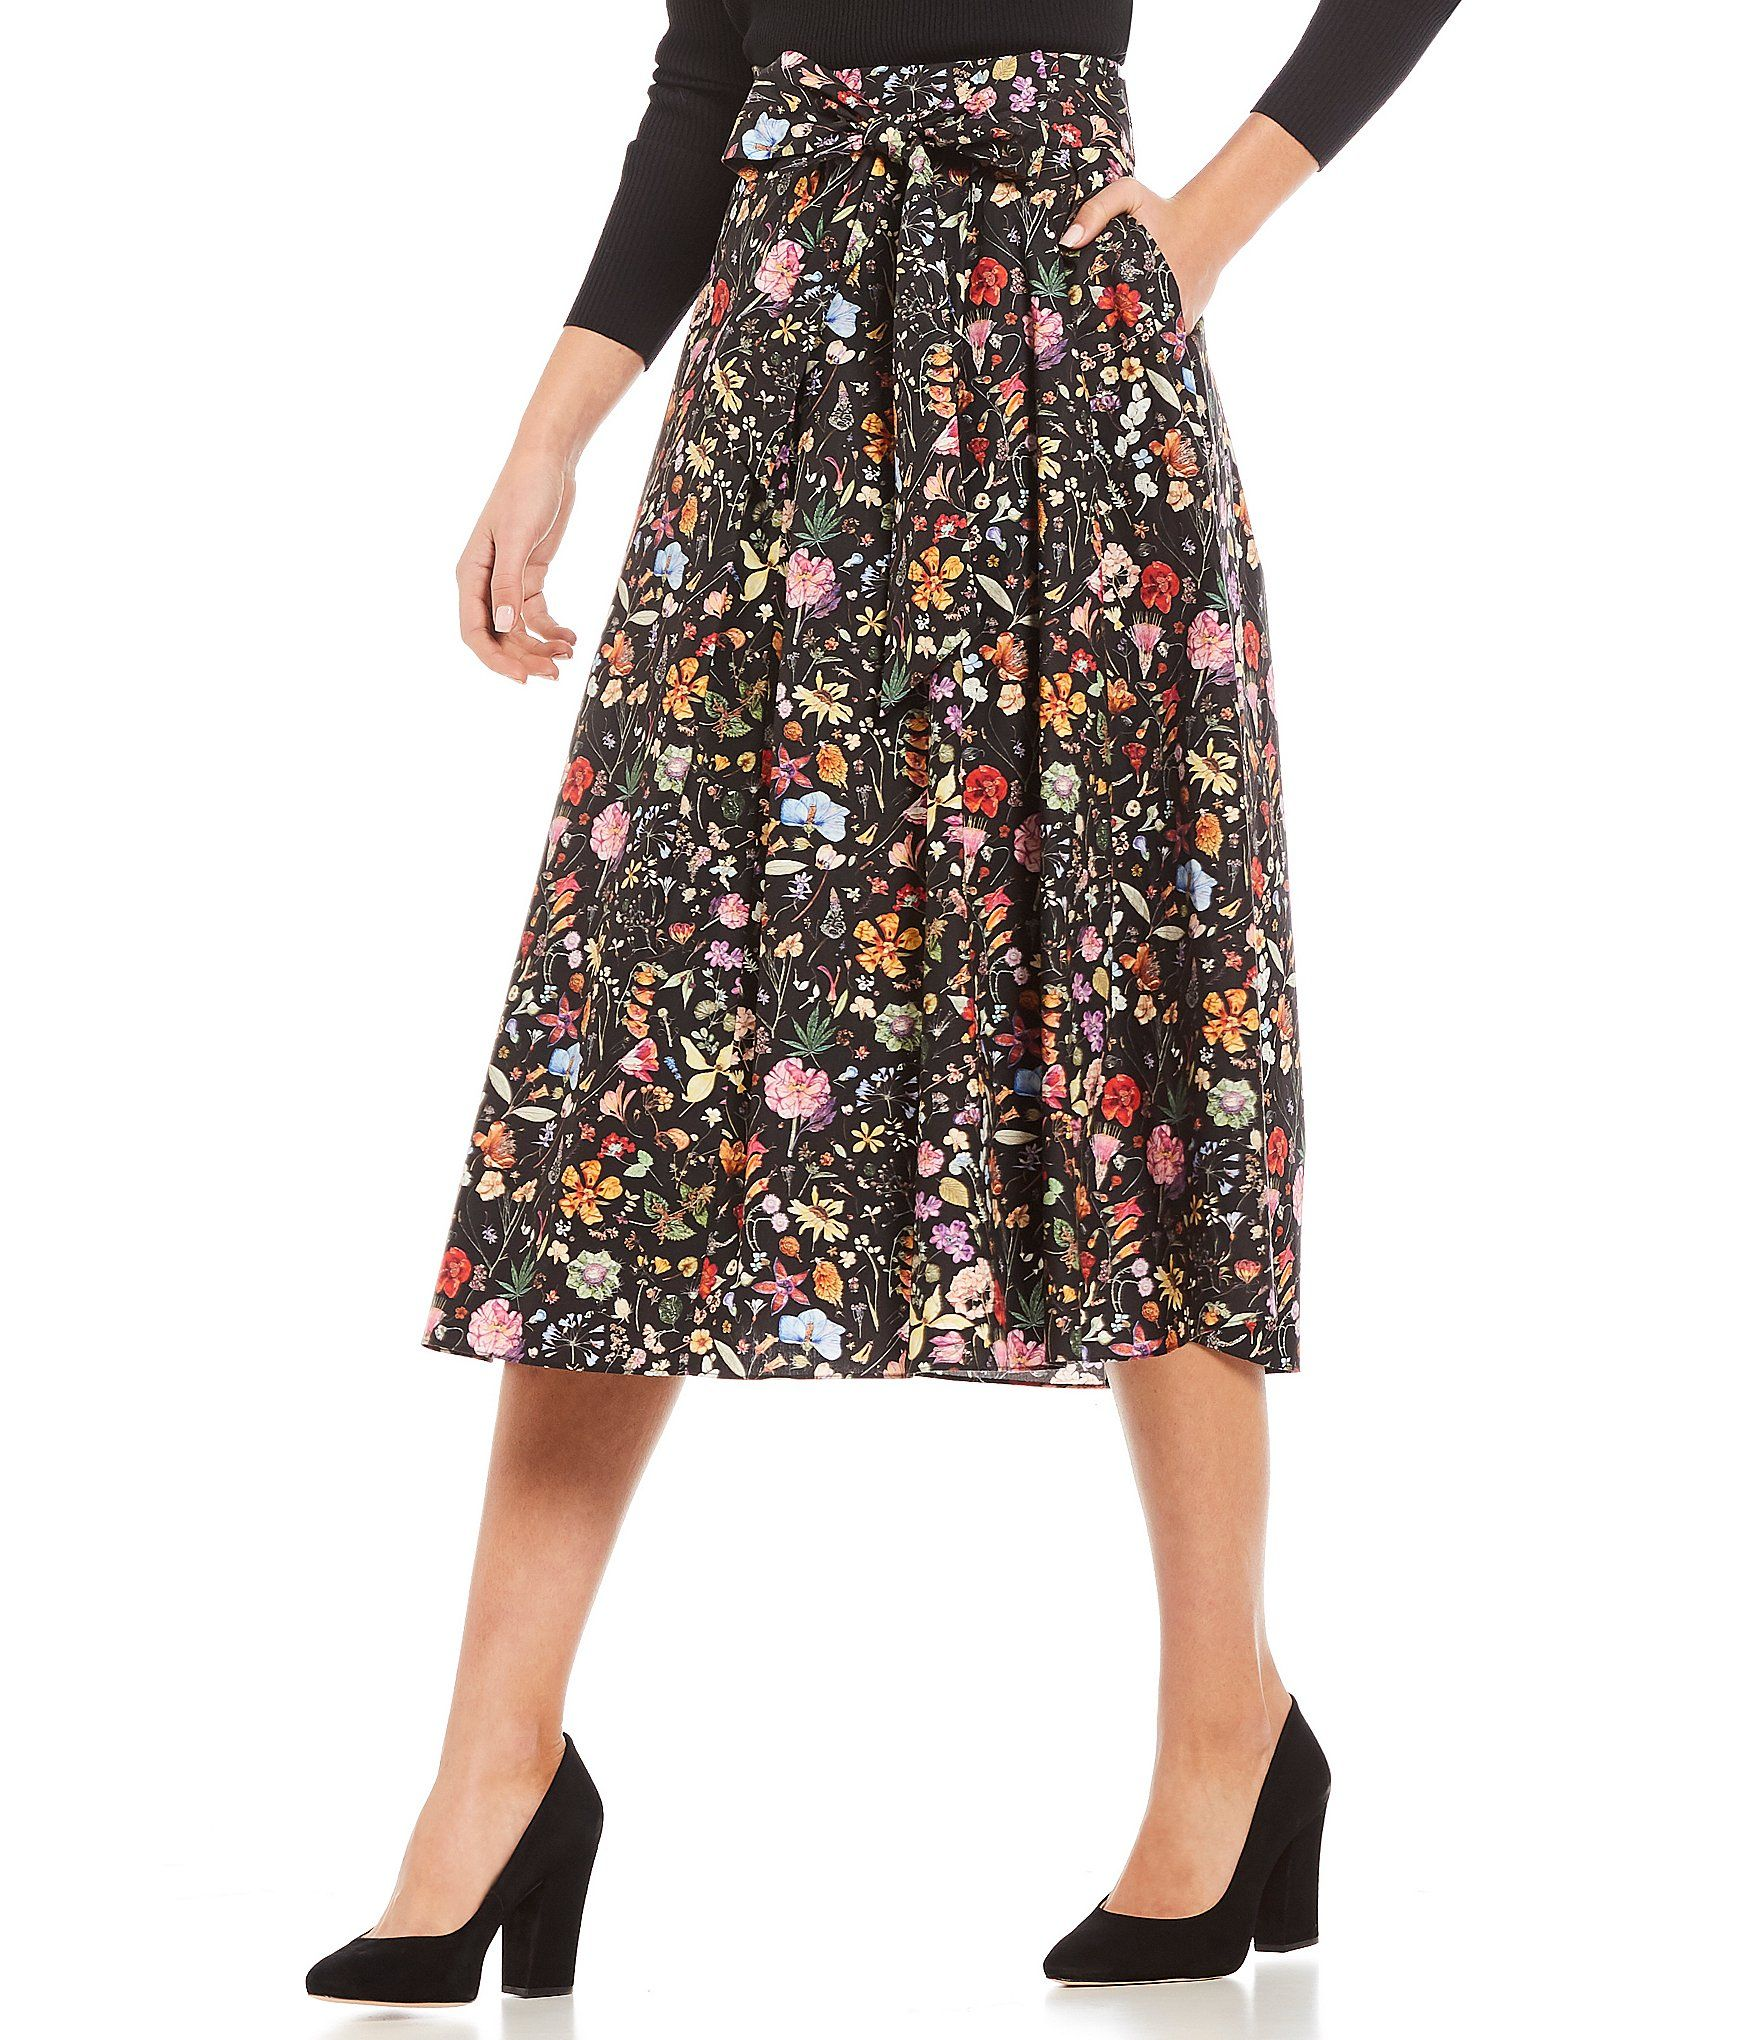 d0f17306f1e2 Shop for Antonio Melani Charlotte Skirt Made With Liberty Fabrics at ...